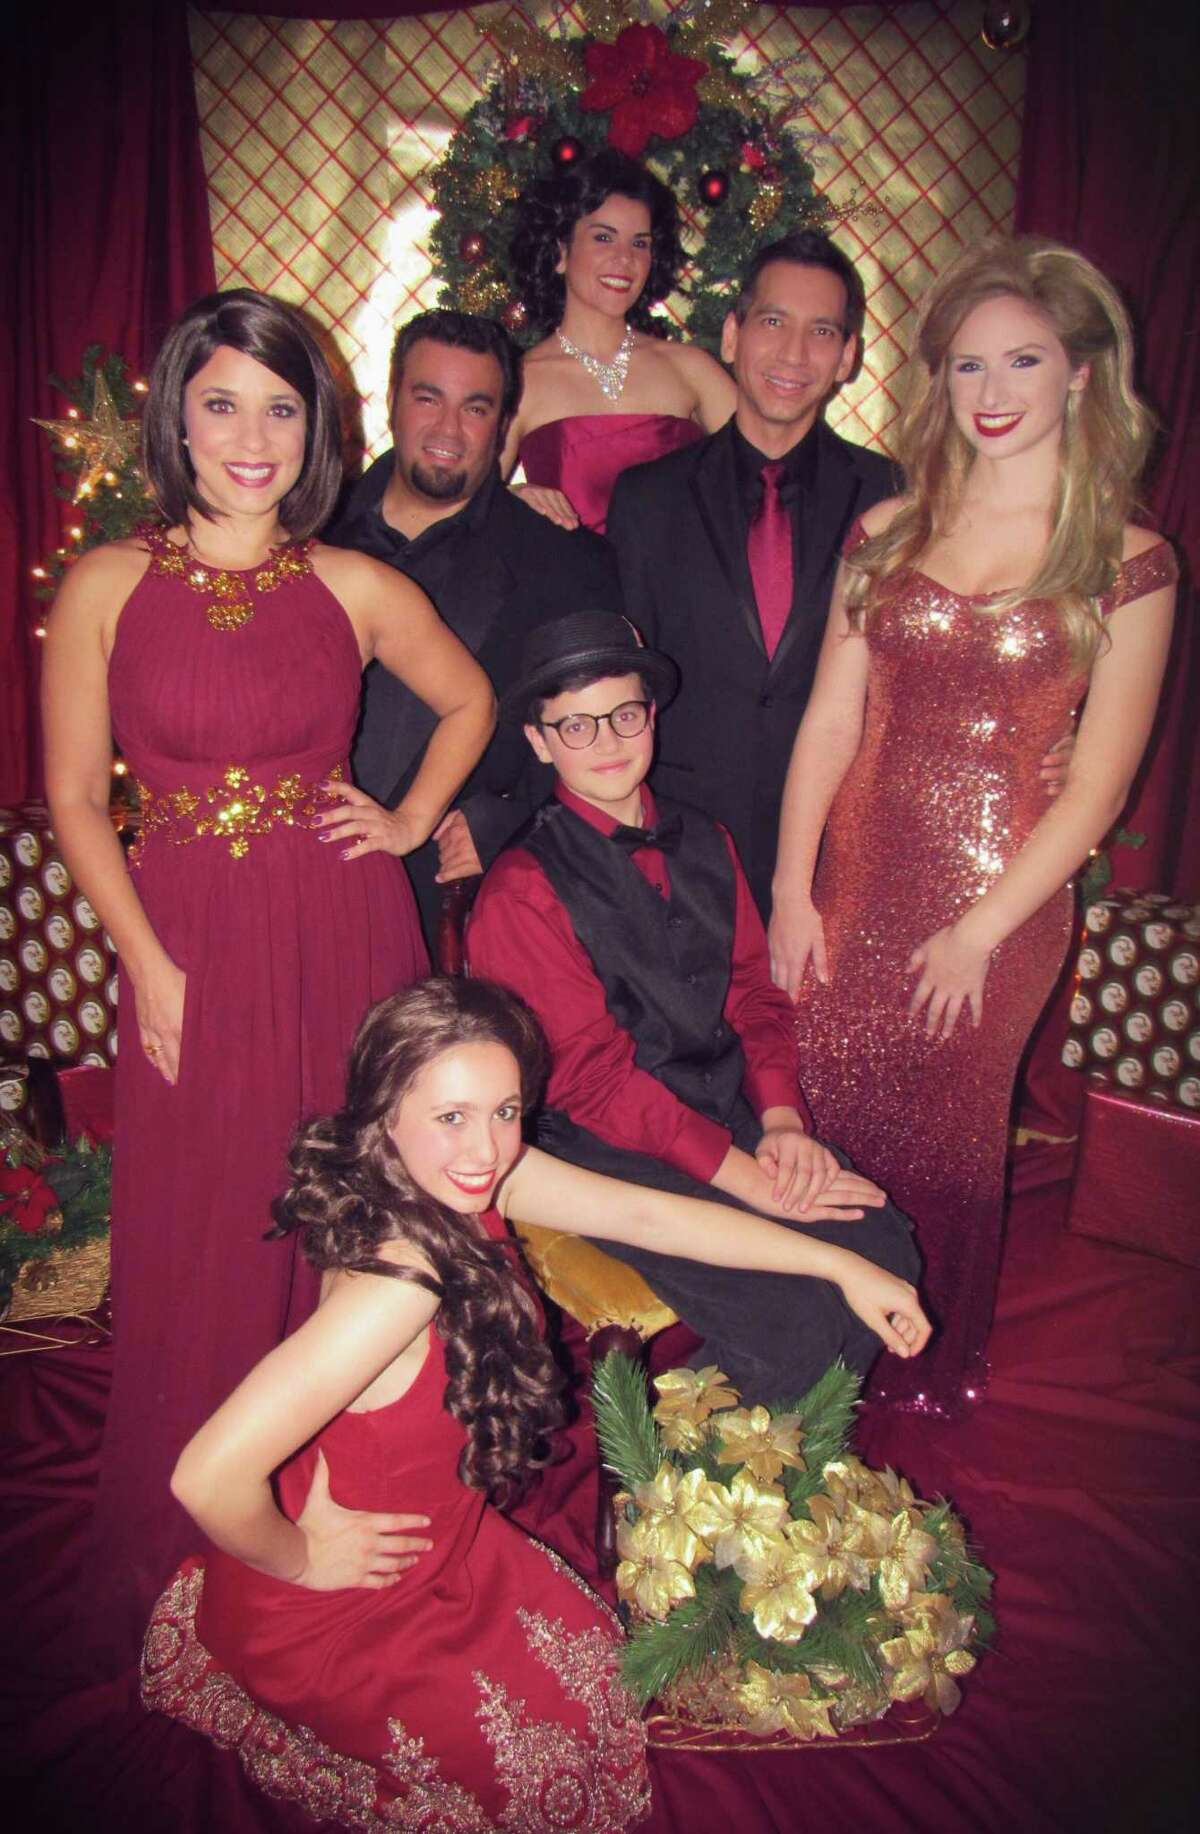 """Crystal Vera (clockwise from left), Stephen Martinez, Sarah Peters, Luis Garcia Jr, Ashton Folsom, Nickie Barron and Peyton Nebens star in """"Home for the Holidays"""" at The Harlequin."""